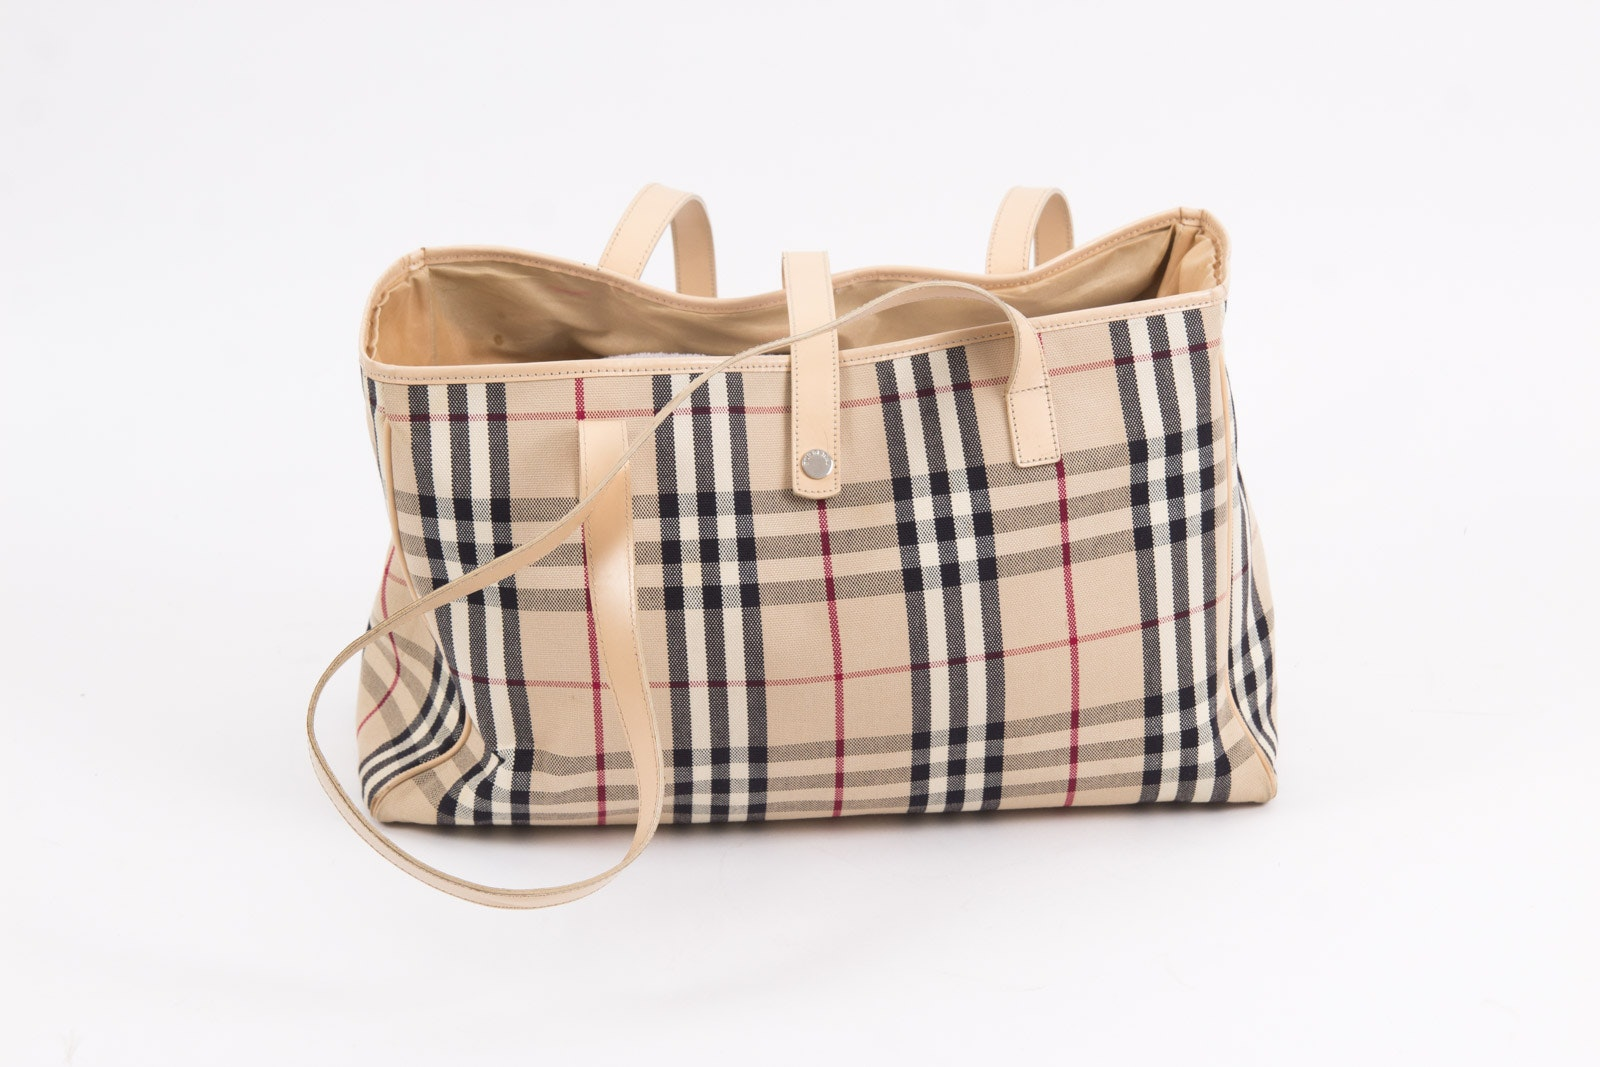 Burberry London Nova Check Tote Bag